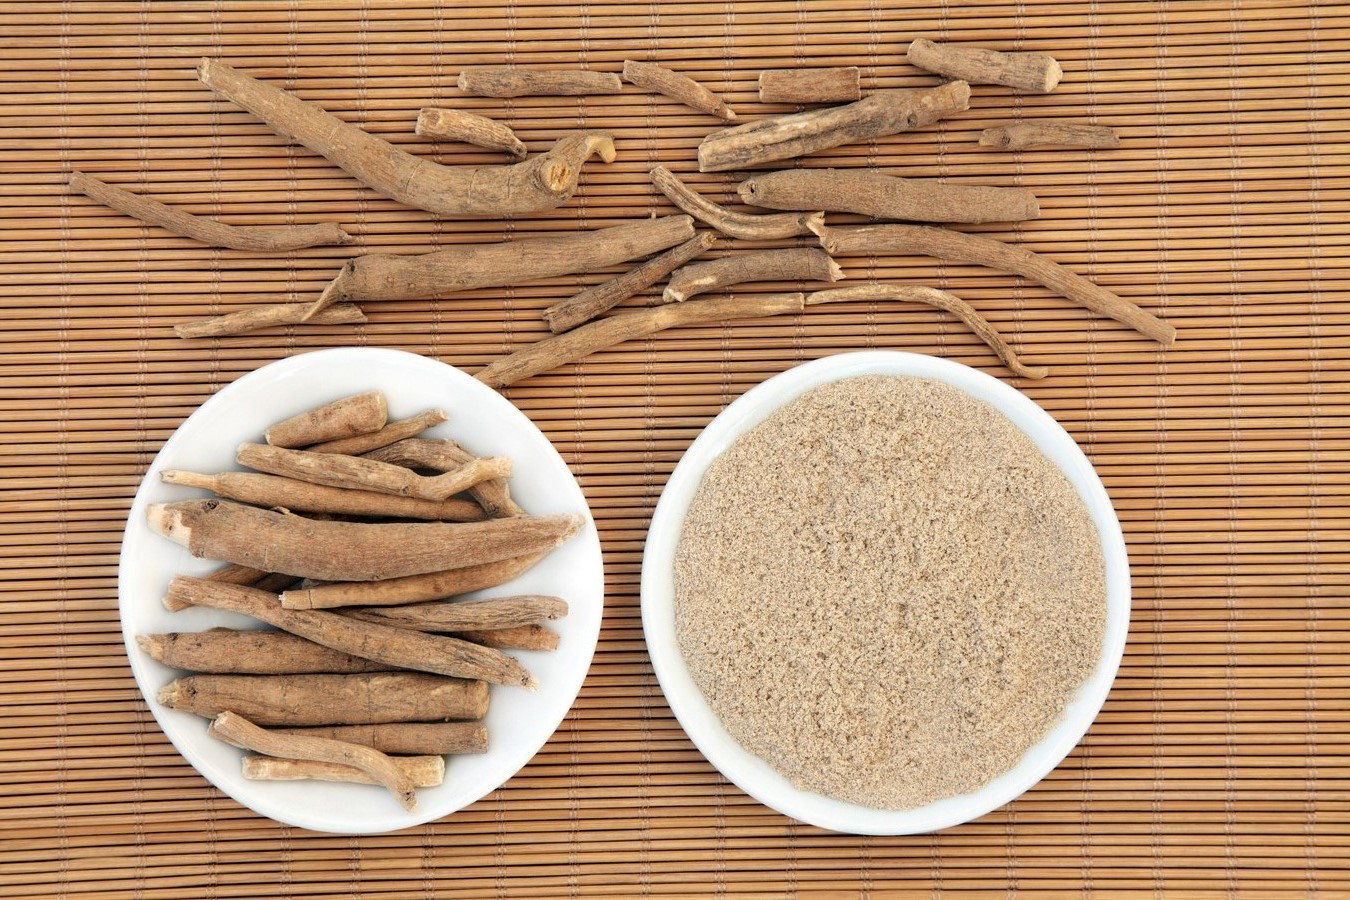 Top 5 Benefits of Ashwagandha to Treat Diabetes & Reduce Anxiety and Depression